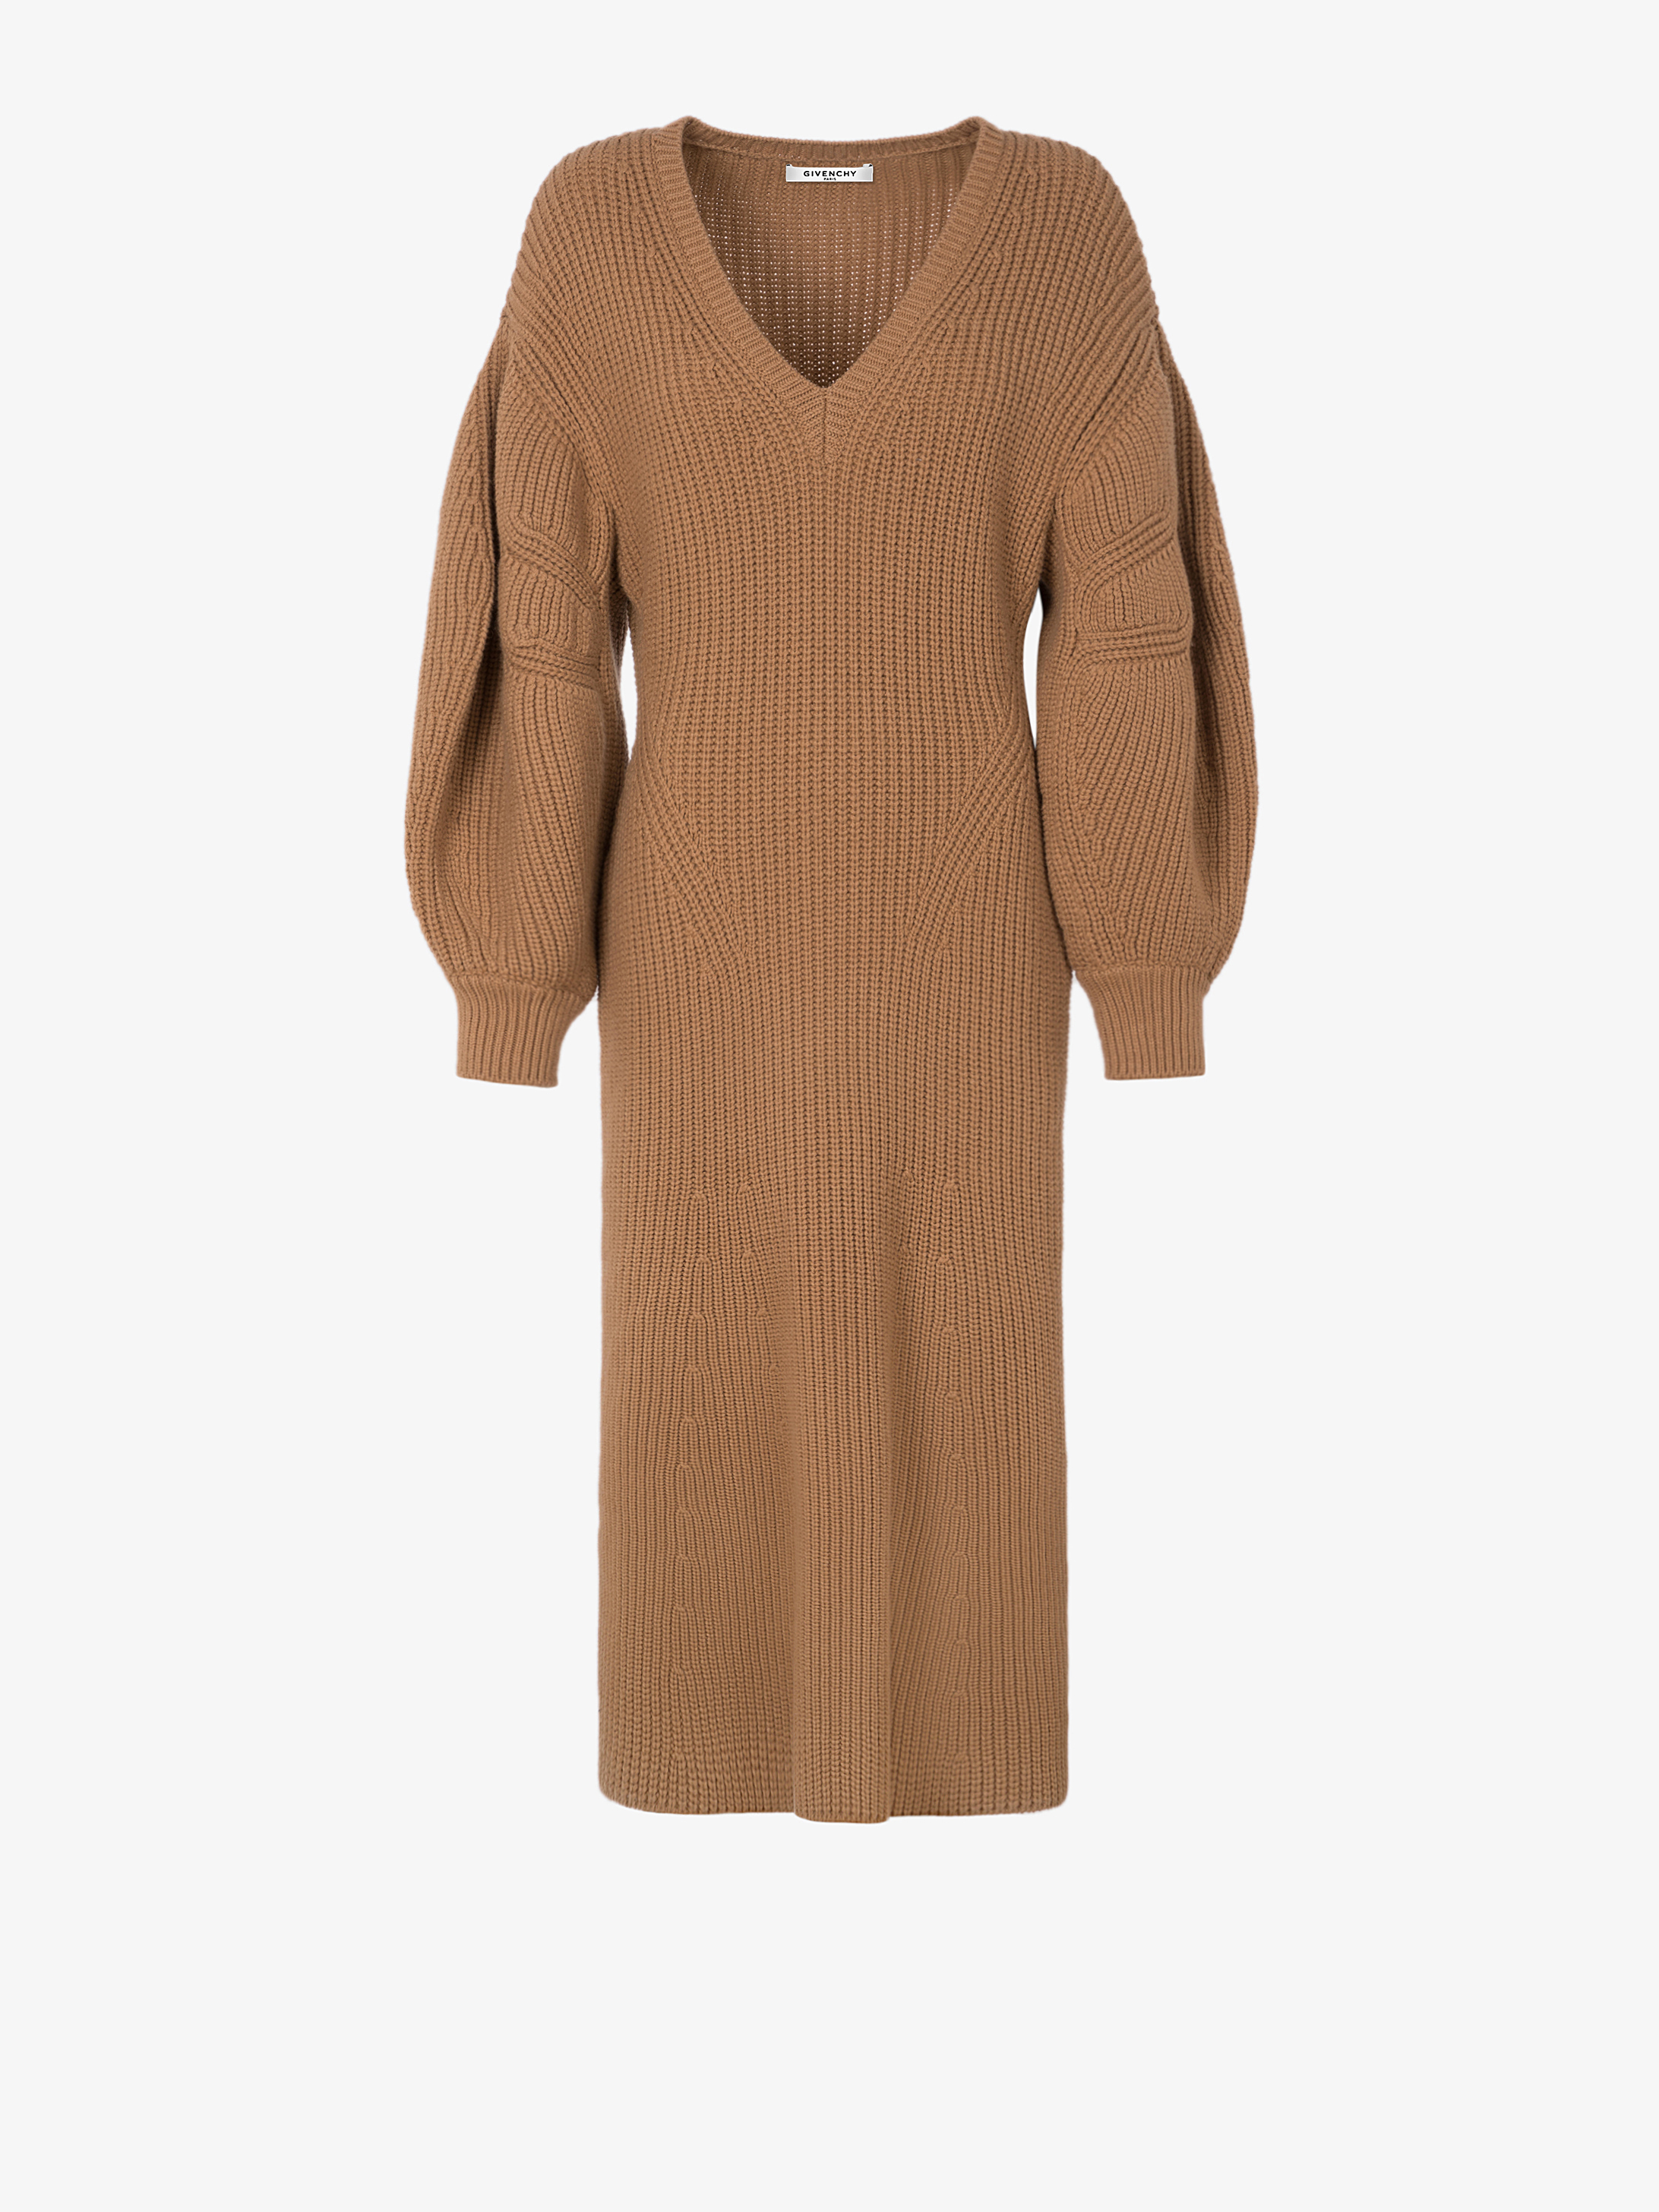 Knitted mid-length dress with puff sleeves